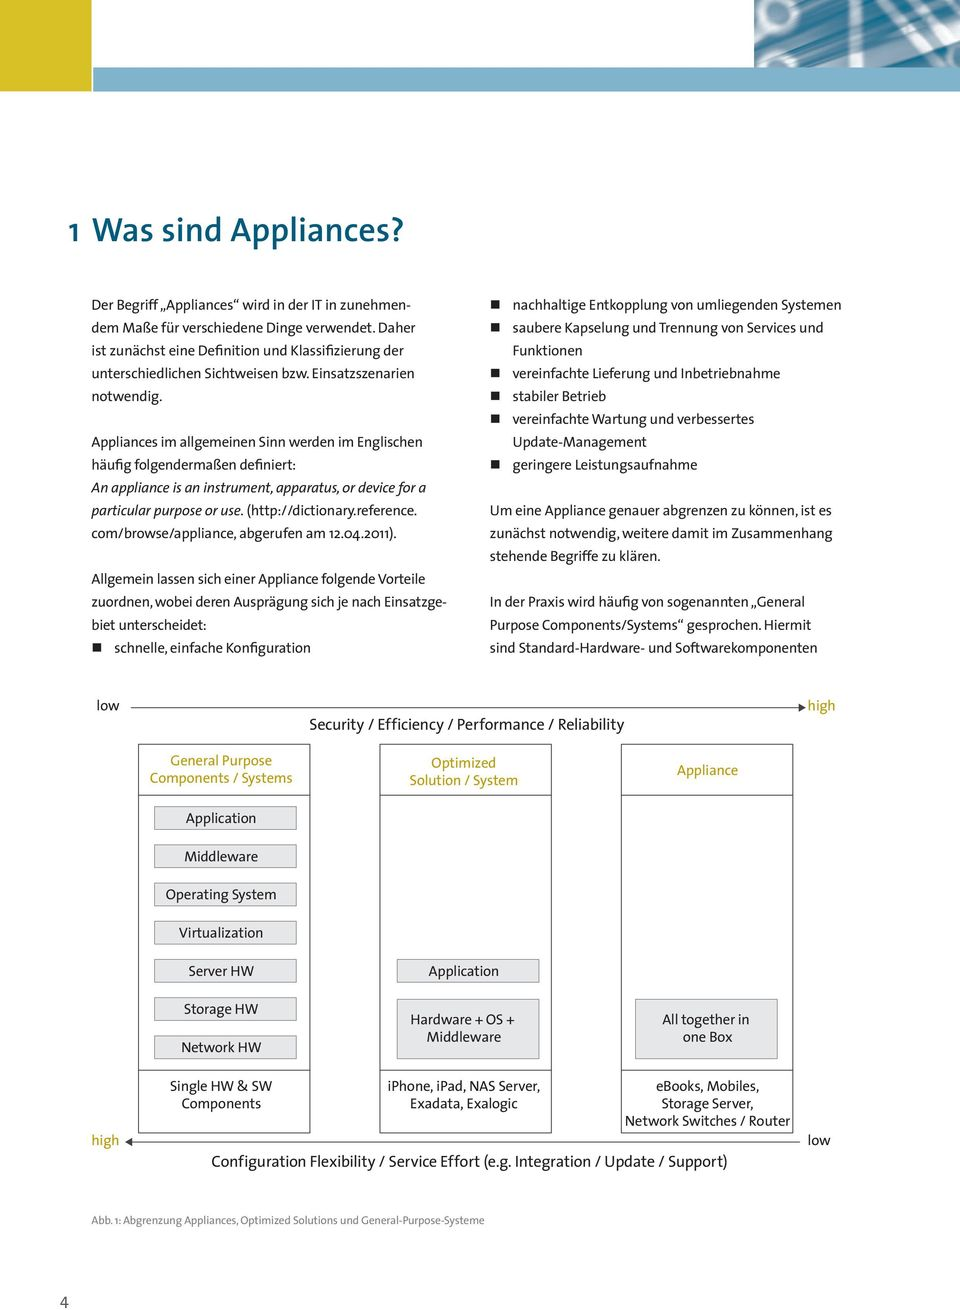 Appliances im allgemeinen Sinn werden im Englischen häufig folgendermaßen definiert: An appliance is an instrument, apparatus, or device for a particular purpose or use. (http://dictionary.reference.